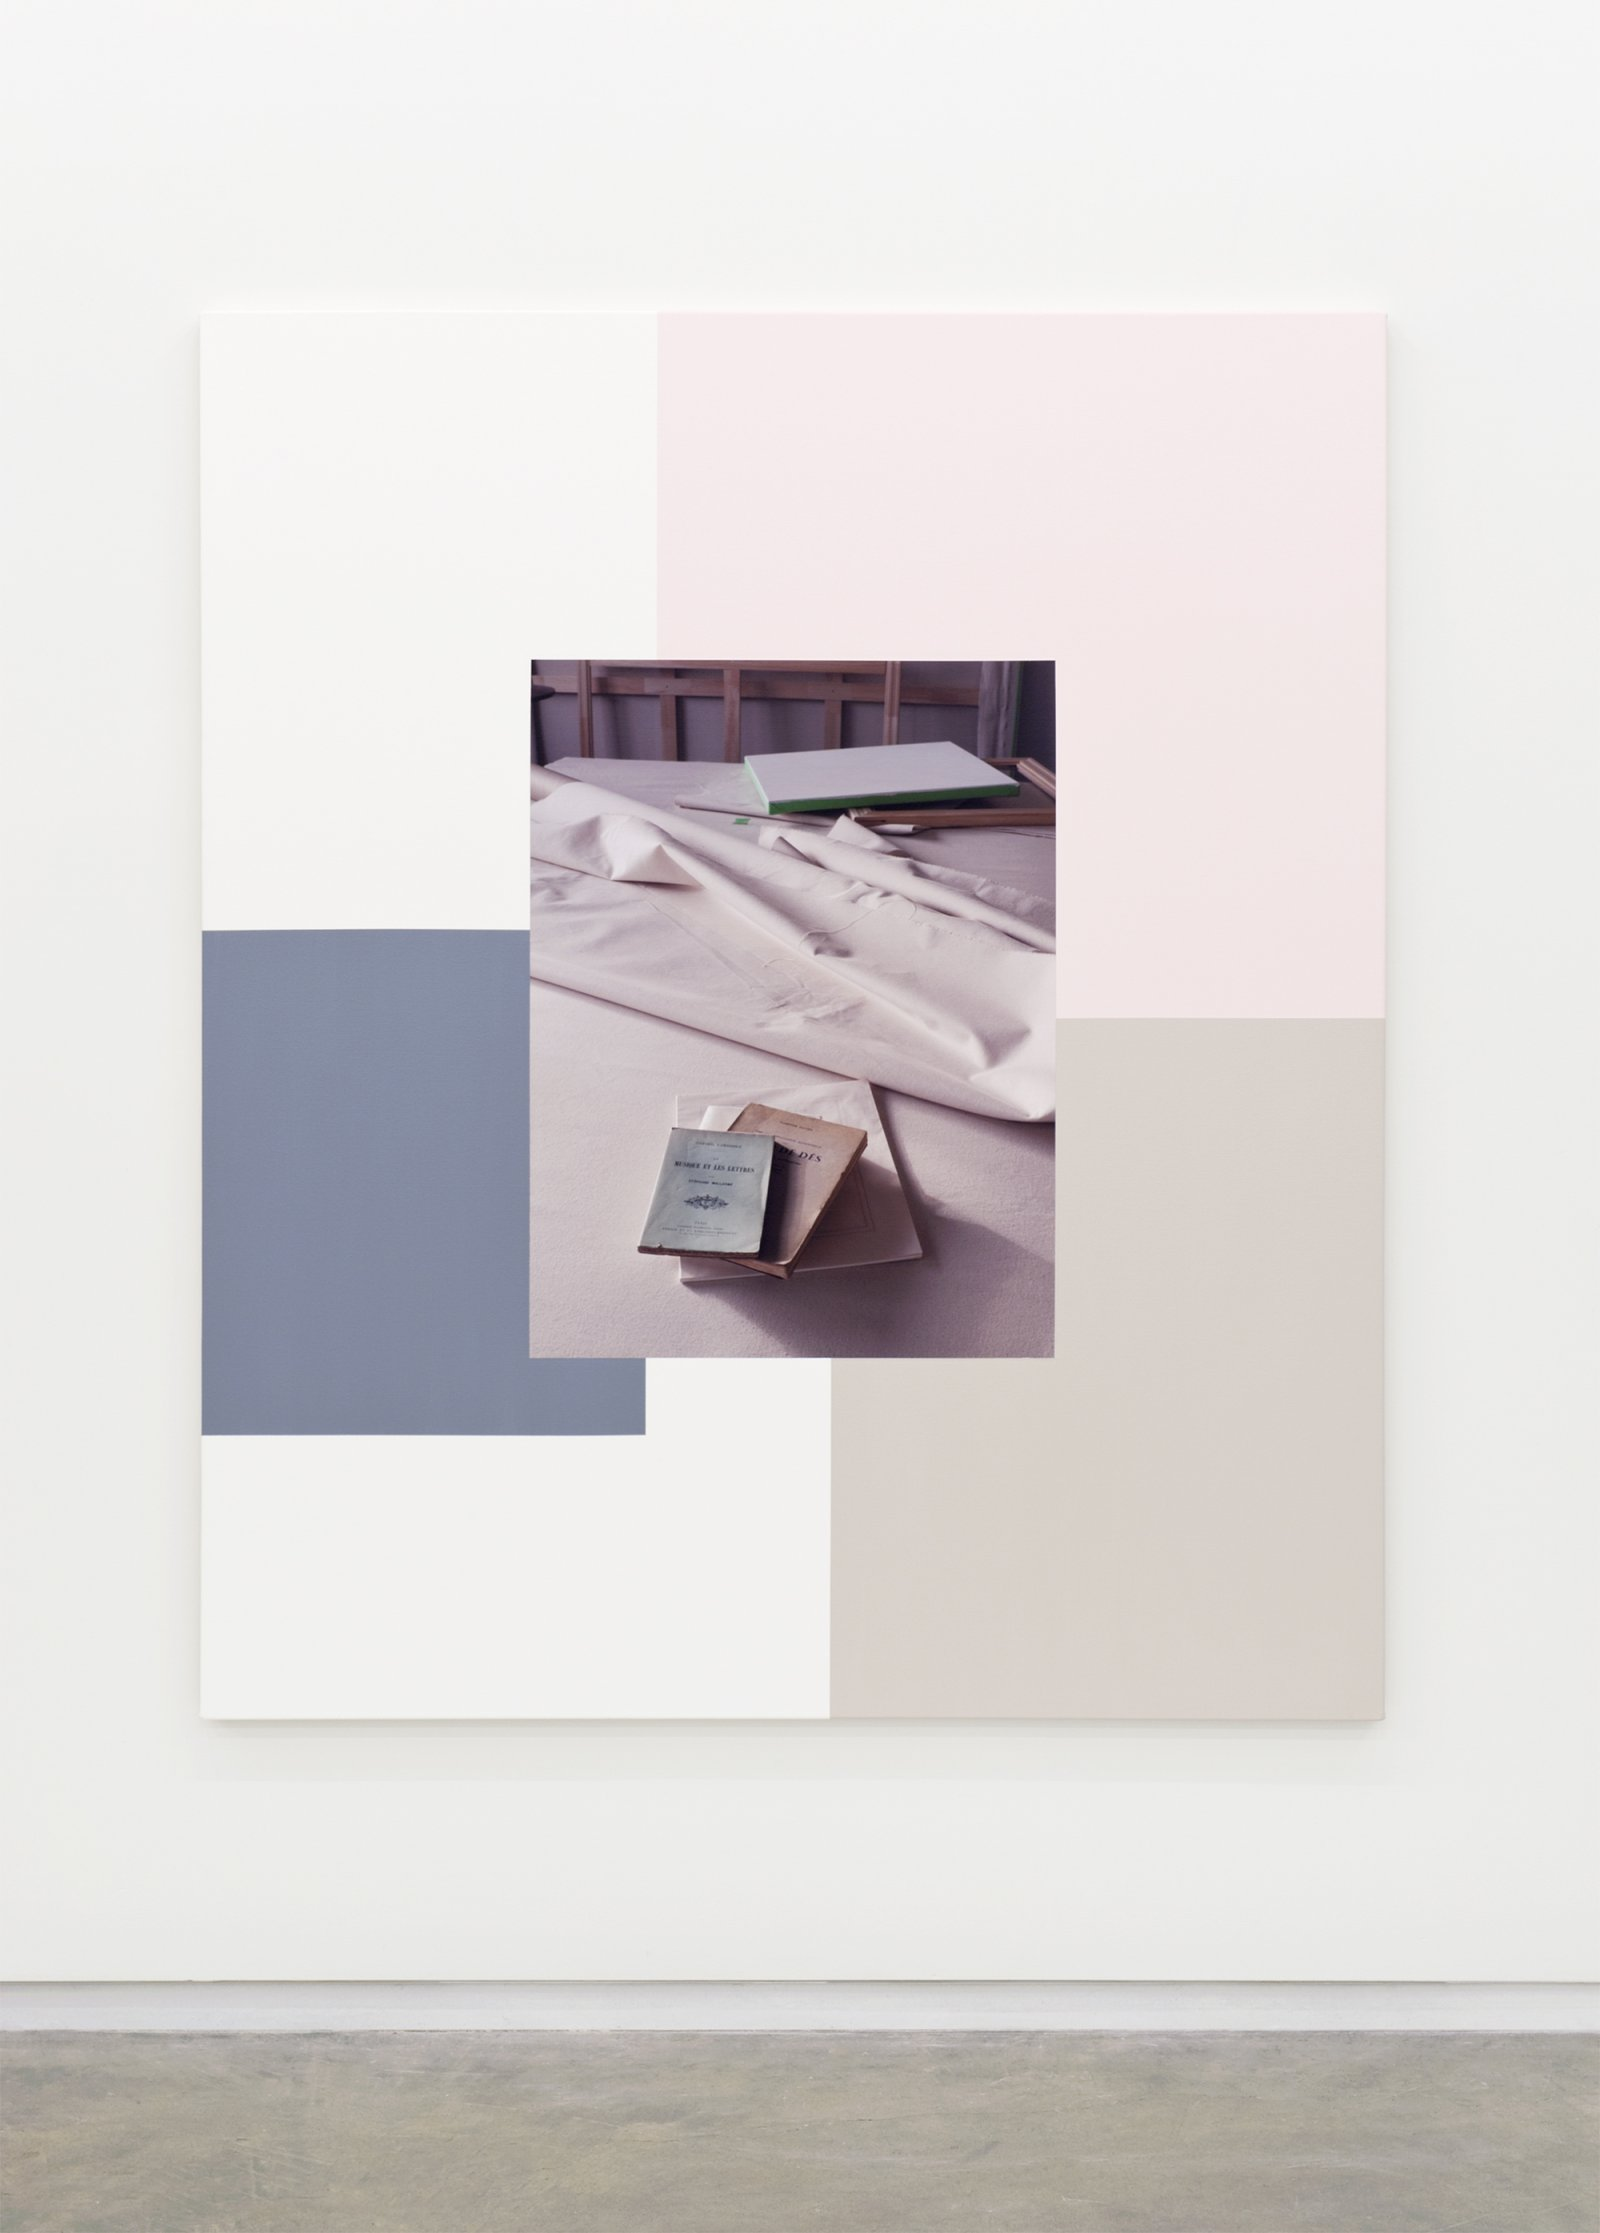 Ian Wallace,Table with Un Coup de Des I, 2011, photolaminate with acrylic on canvas, 72 x 60 in. (183 x 152 cm)